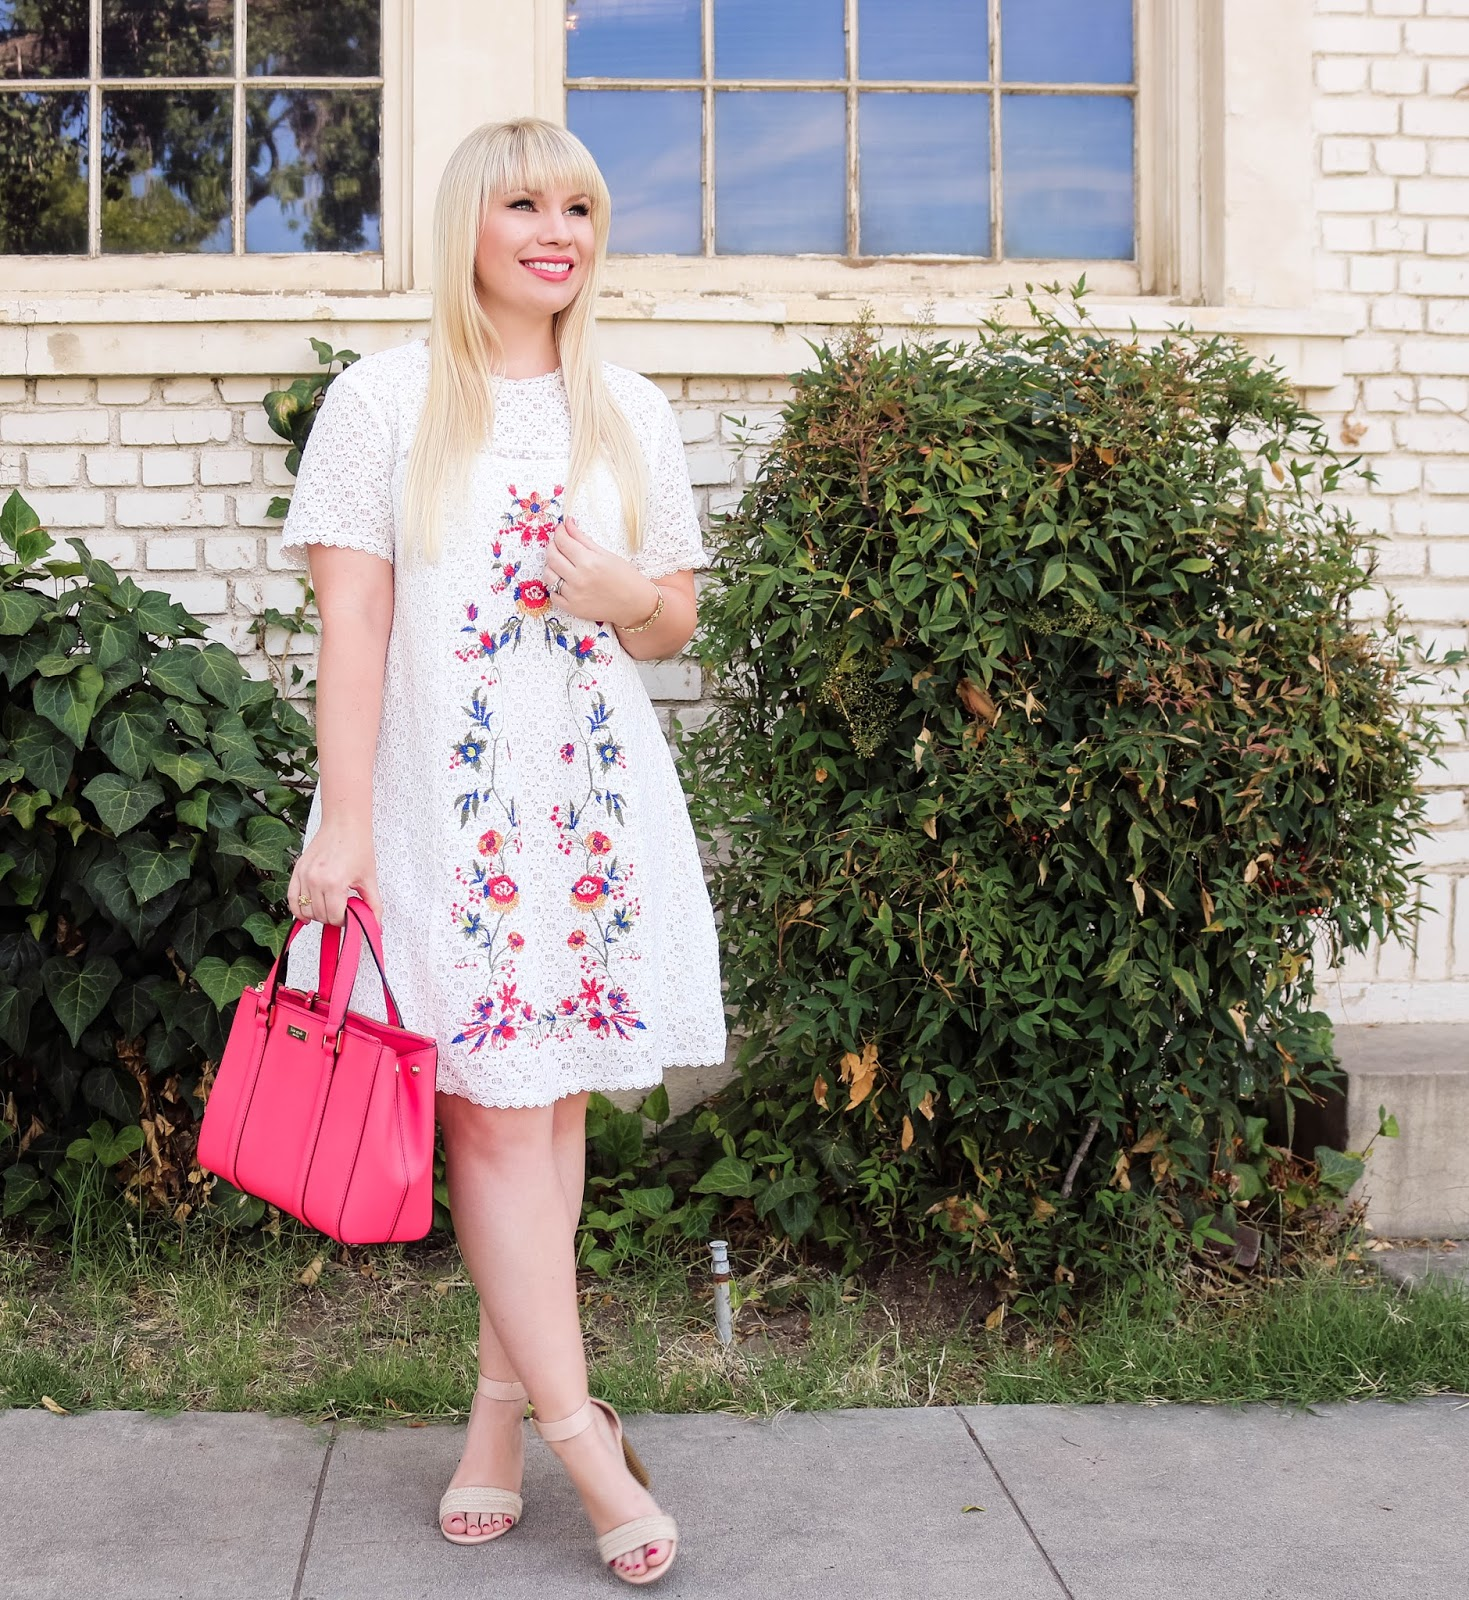 Elizabeth Hugen of Lizzie in Lace styles the Perfect White Embroidered Dress for Summer